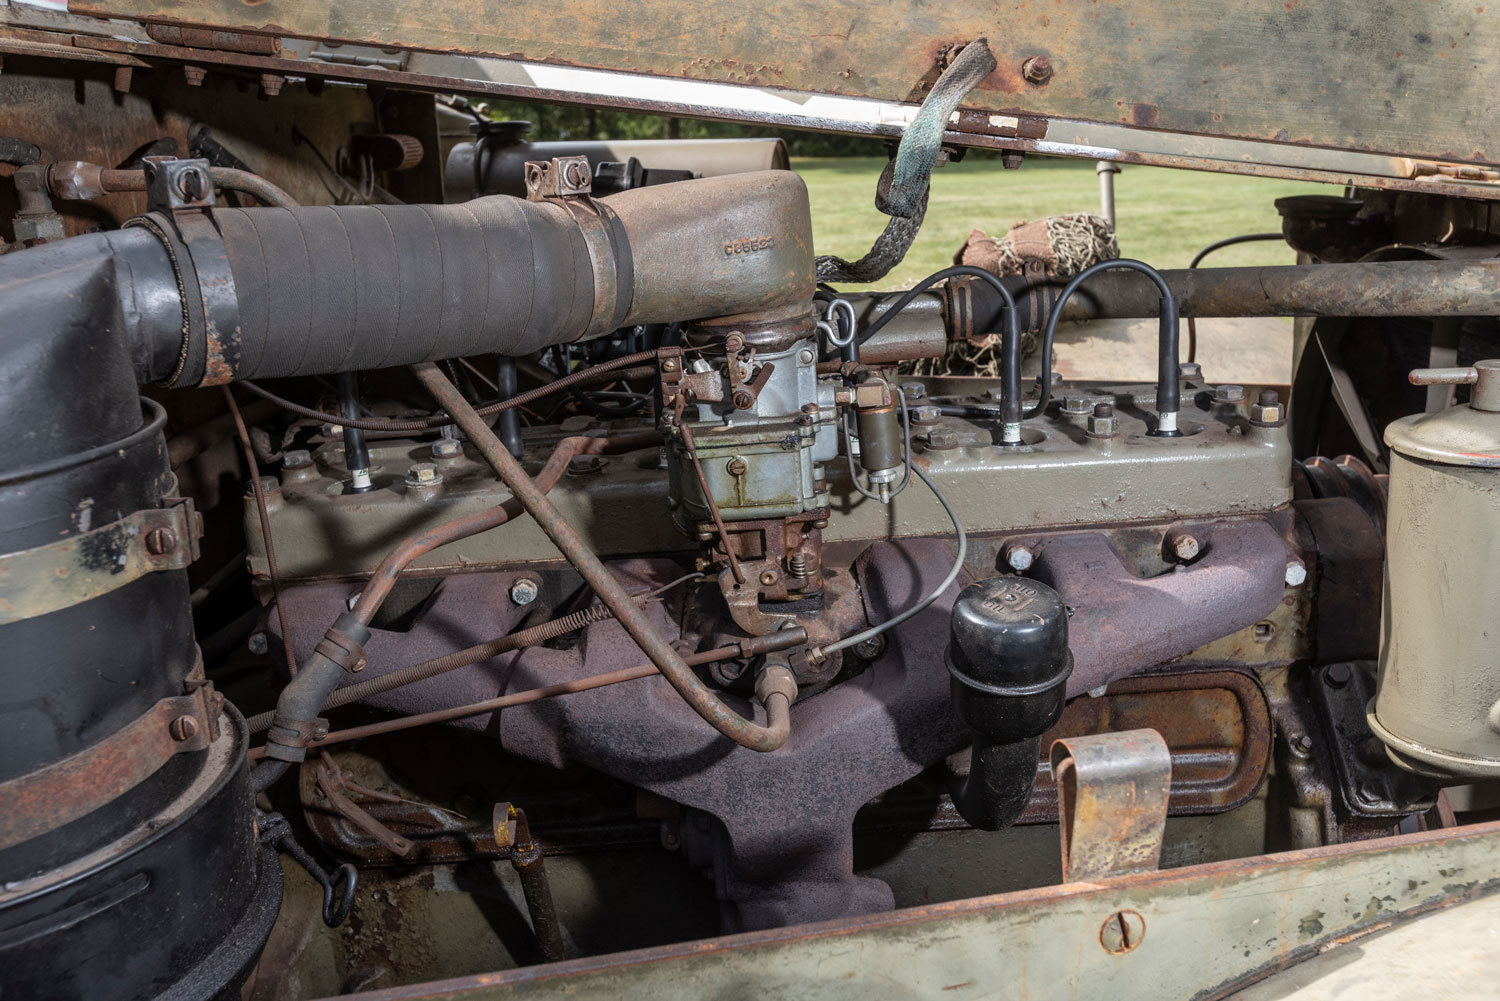 The 386-cubicinch White 160AX six-cylinder engine still had oil in it when Koloc found it. Following a rebuild, its 128 horses can propel the 10-ton machine to about 40 mph.